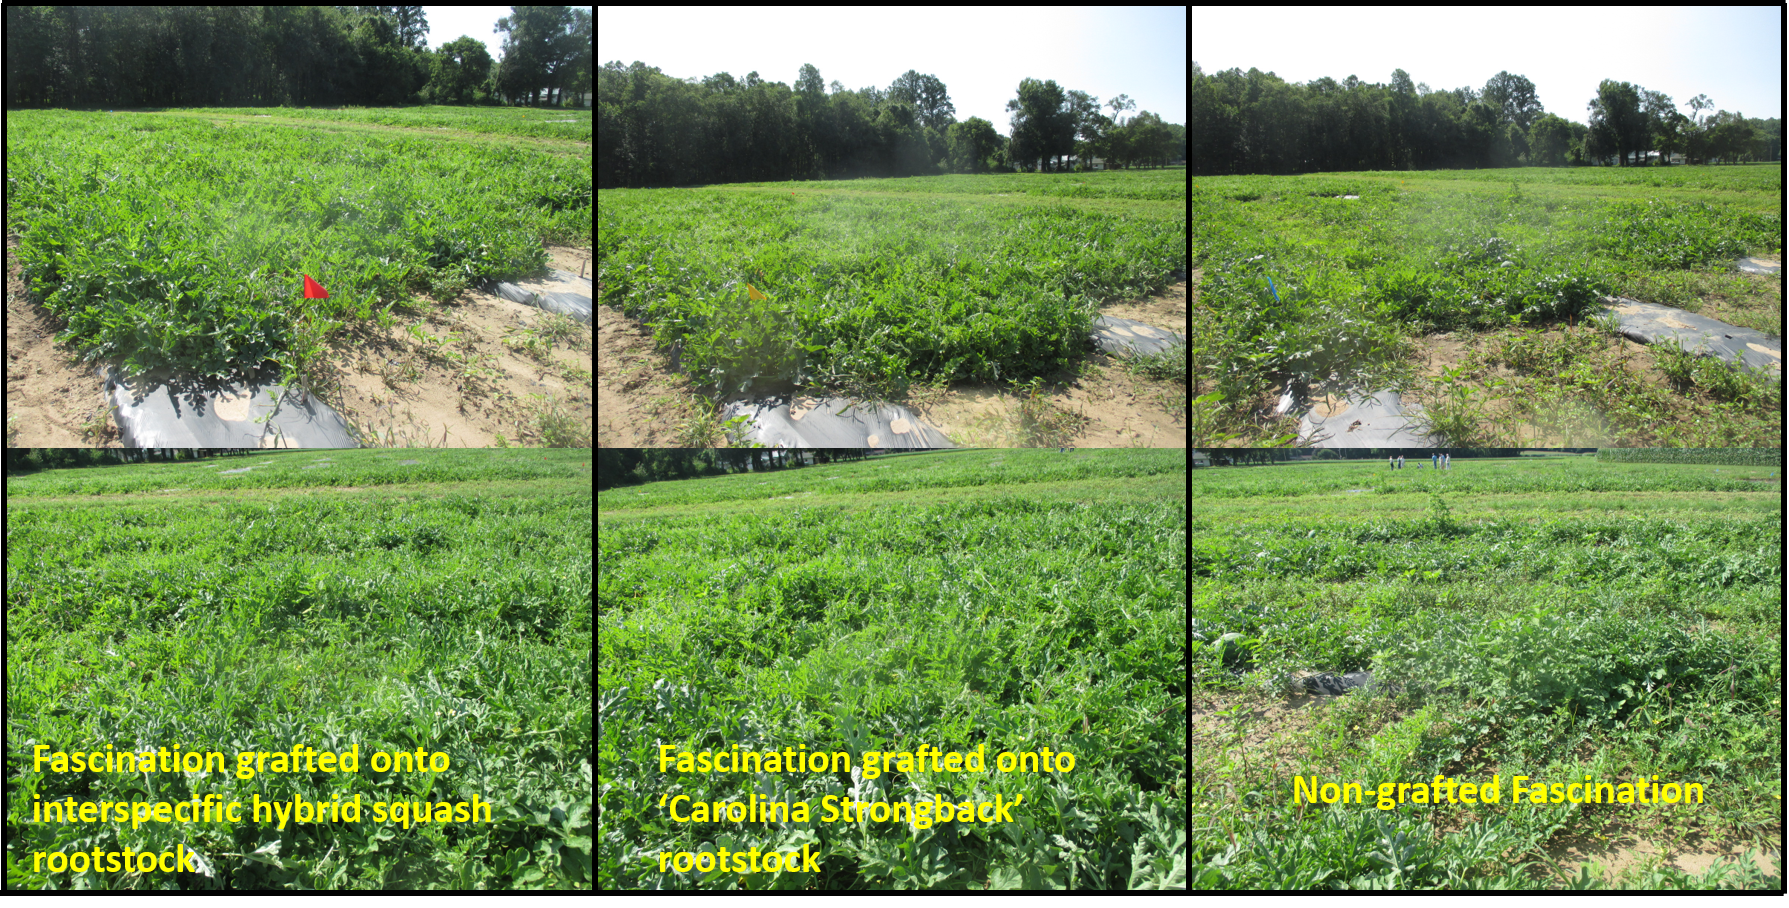 Figure 1. Vine vigor of non-grafted 'Fascination', and 'Fascination' grafted onto interspecific hybrid squash rootstock and 'Carolina Strongback' rootstock.